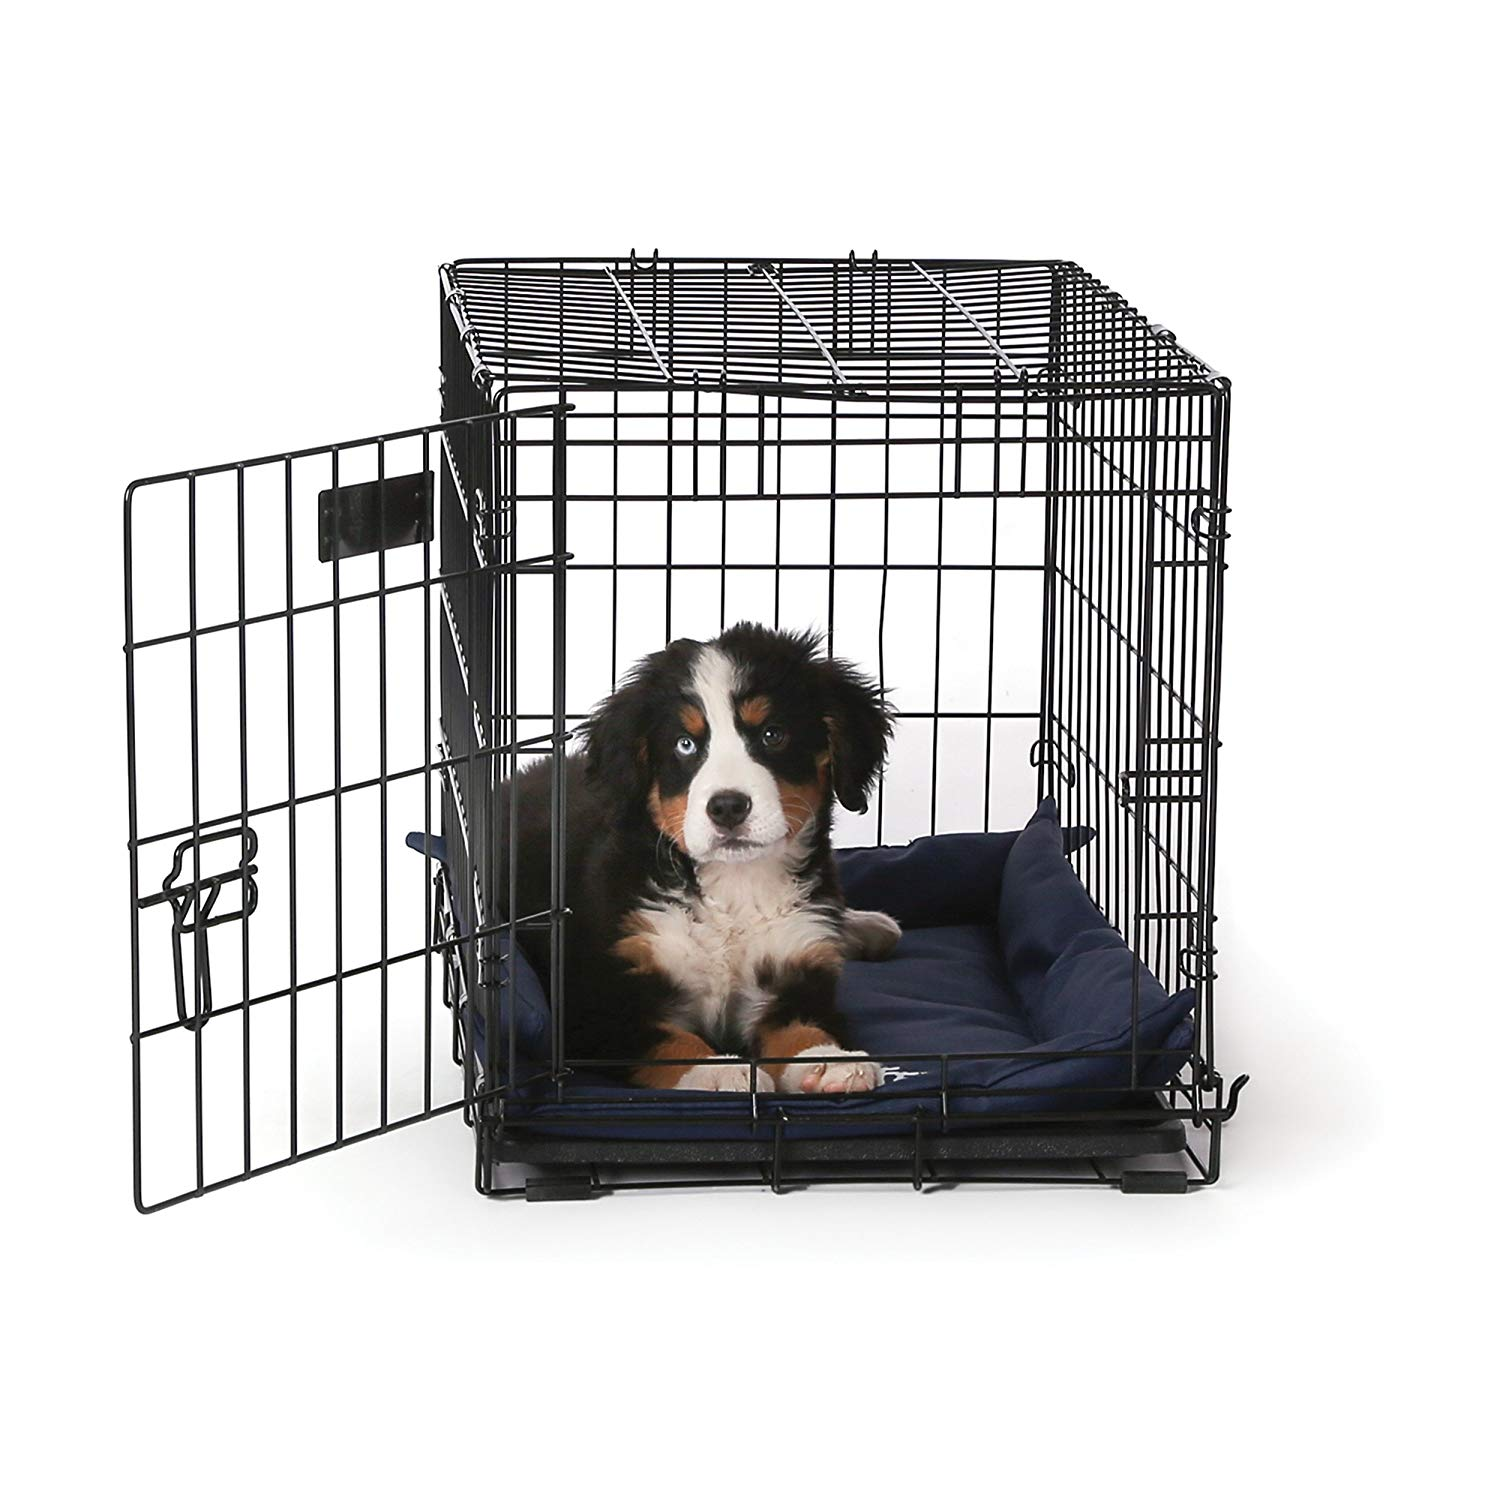 "K&H Pet Products K-9 Ruff n' Tuff Crate Pad Small Navy Blue (20"" x 25"") - 1260 Denier Rip-Stop Polyester for Pets That Need Extra Tough Fabric"